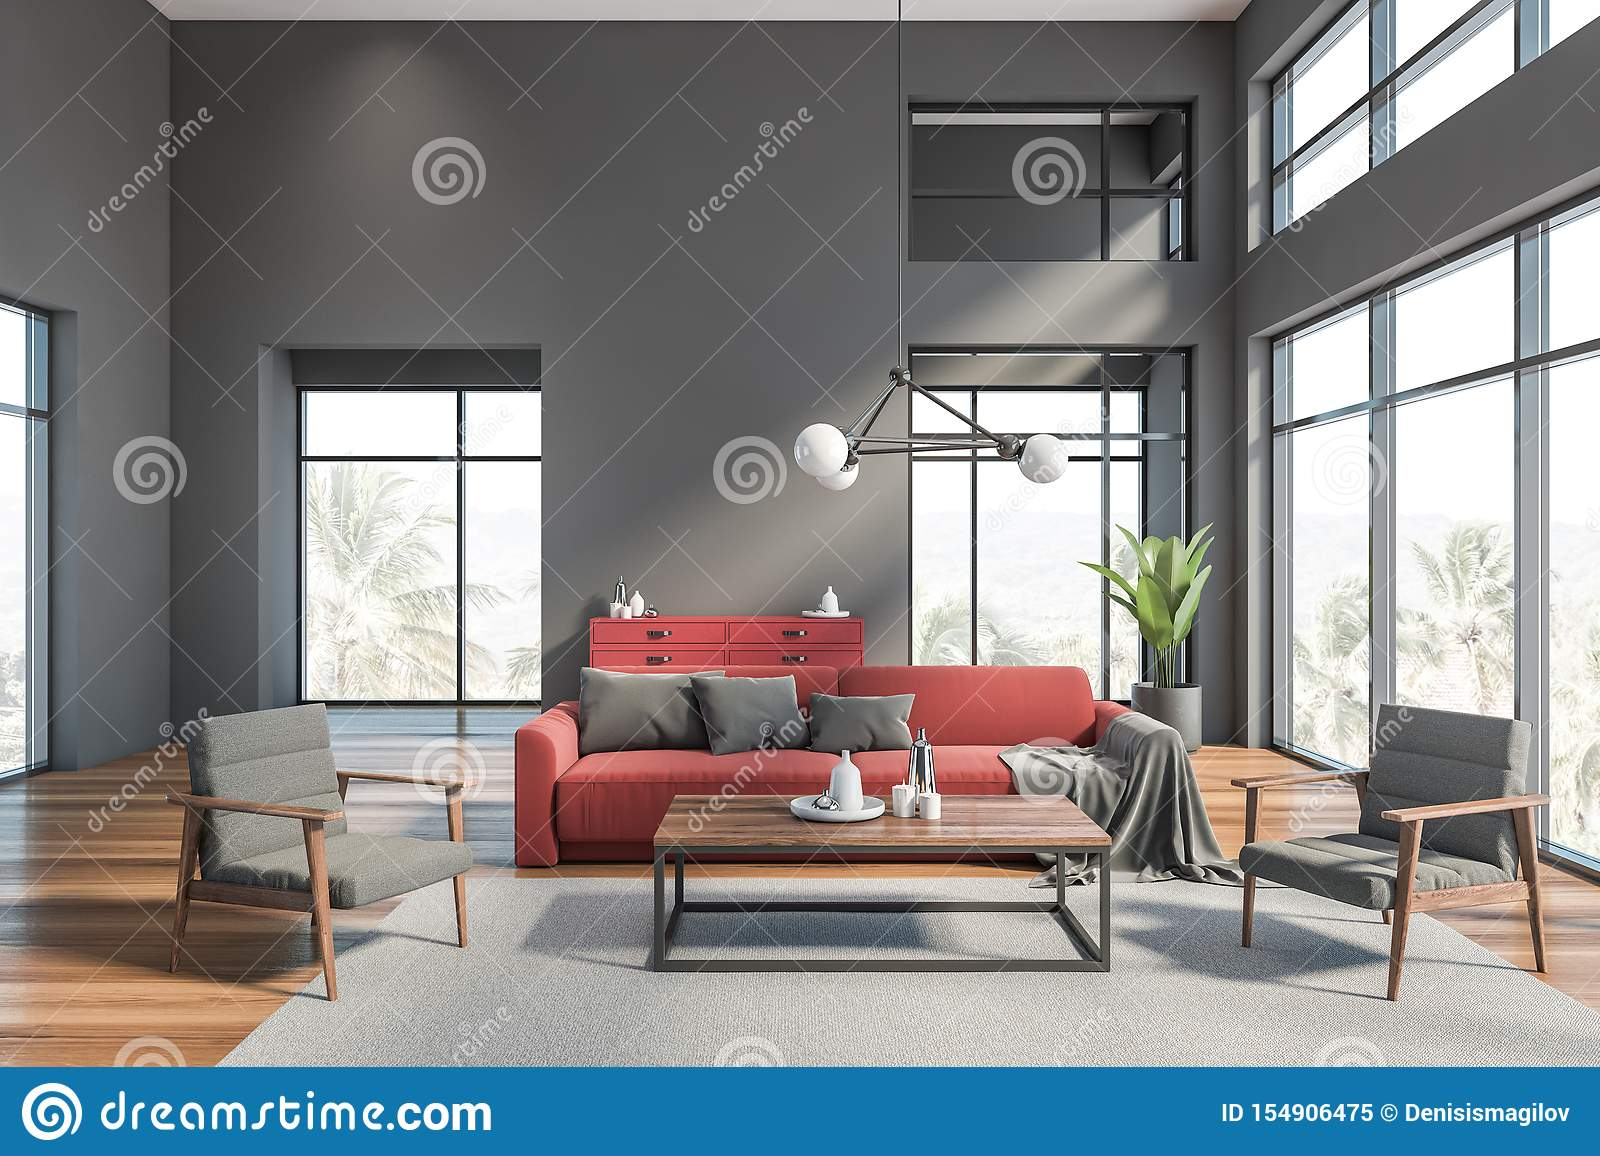 Gray Living Room Interior With Red Sofa Stock Illustration